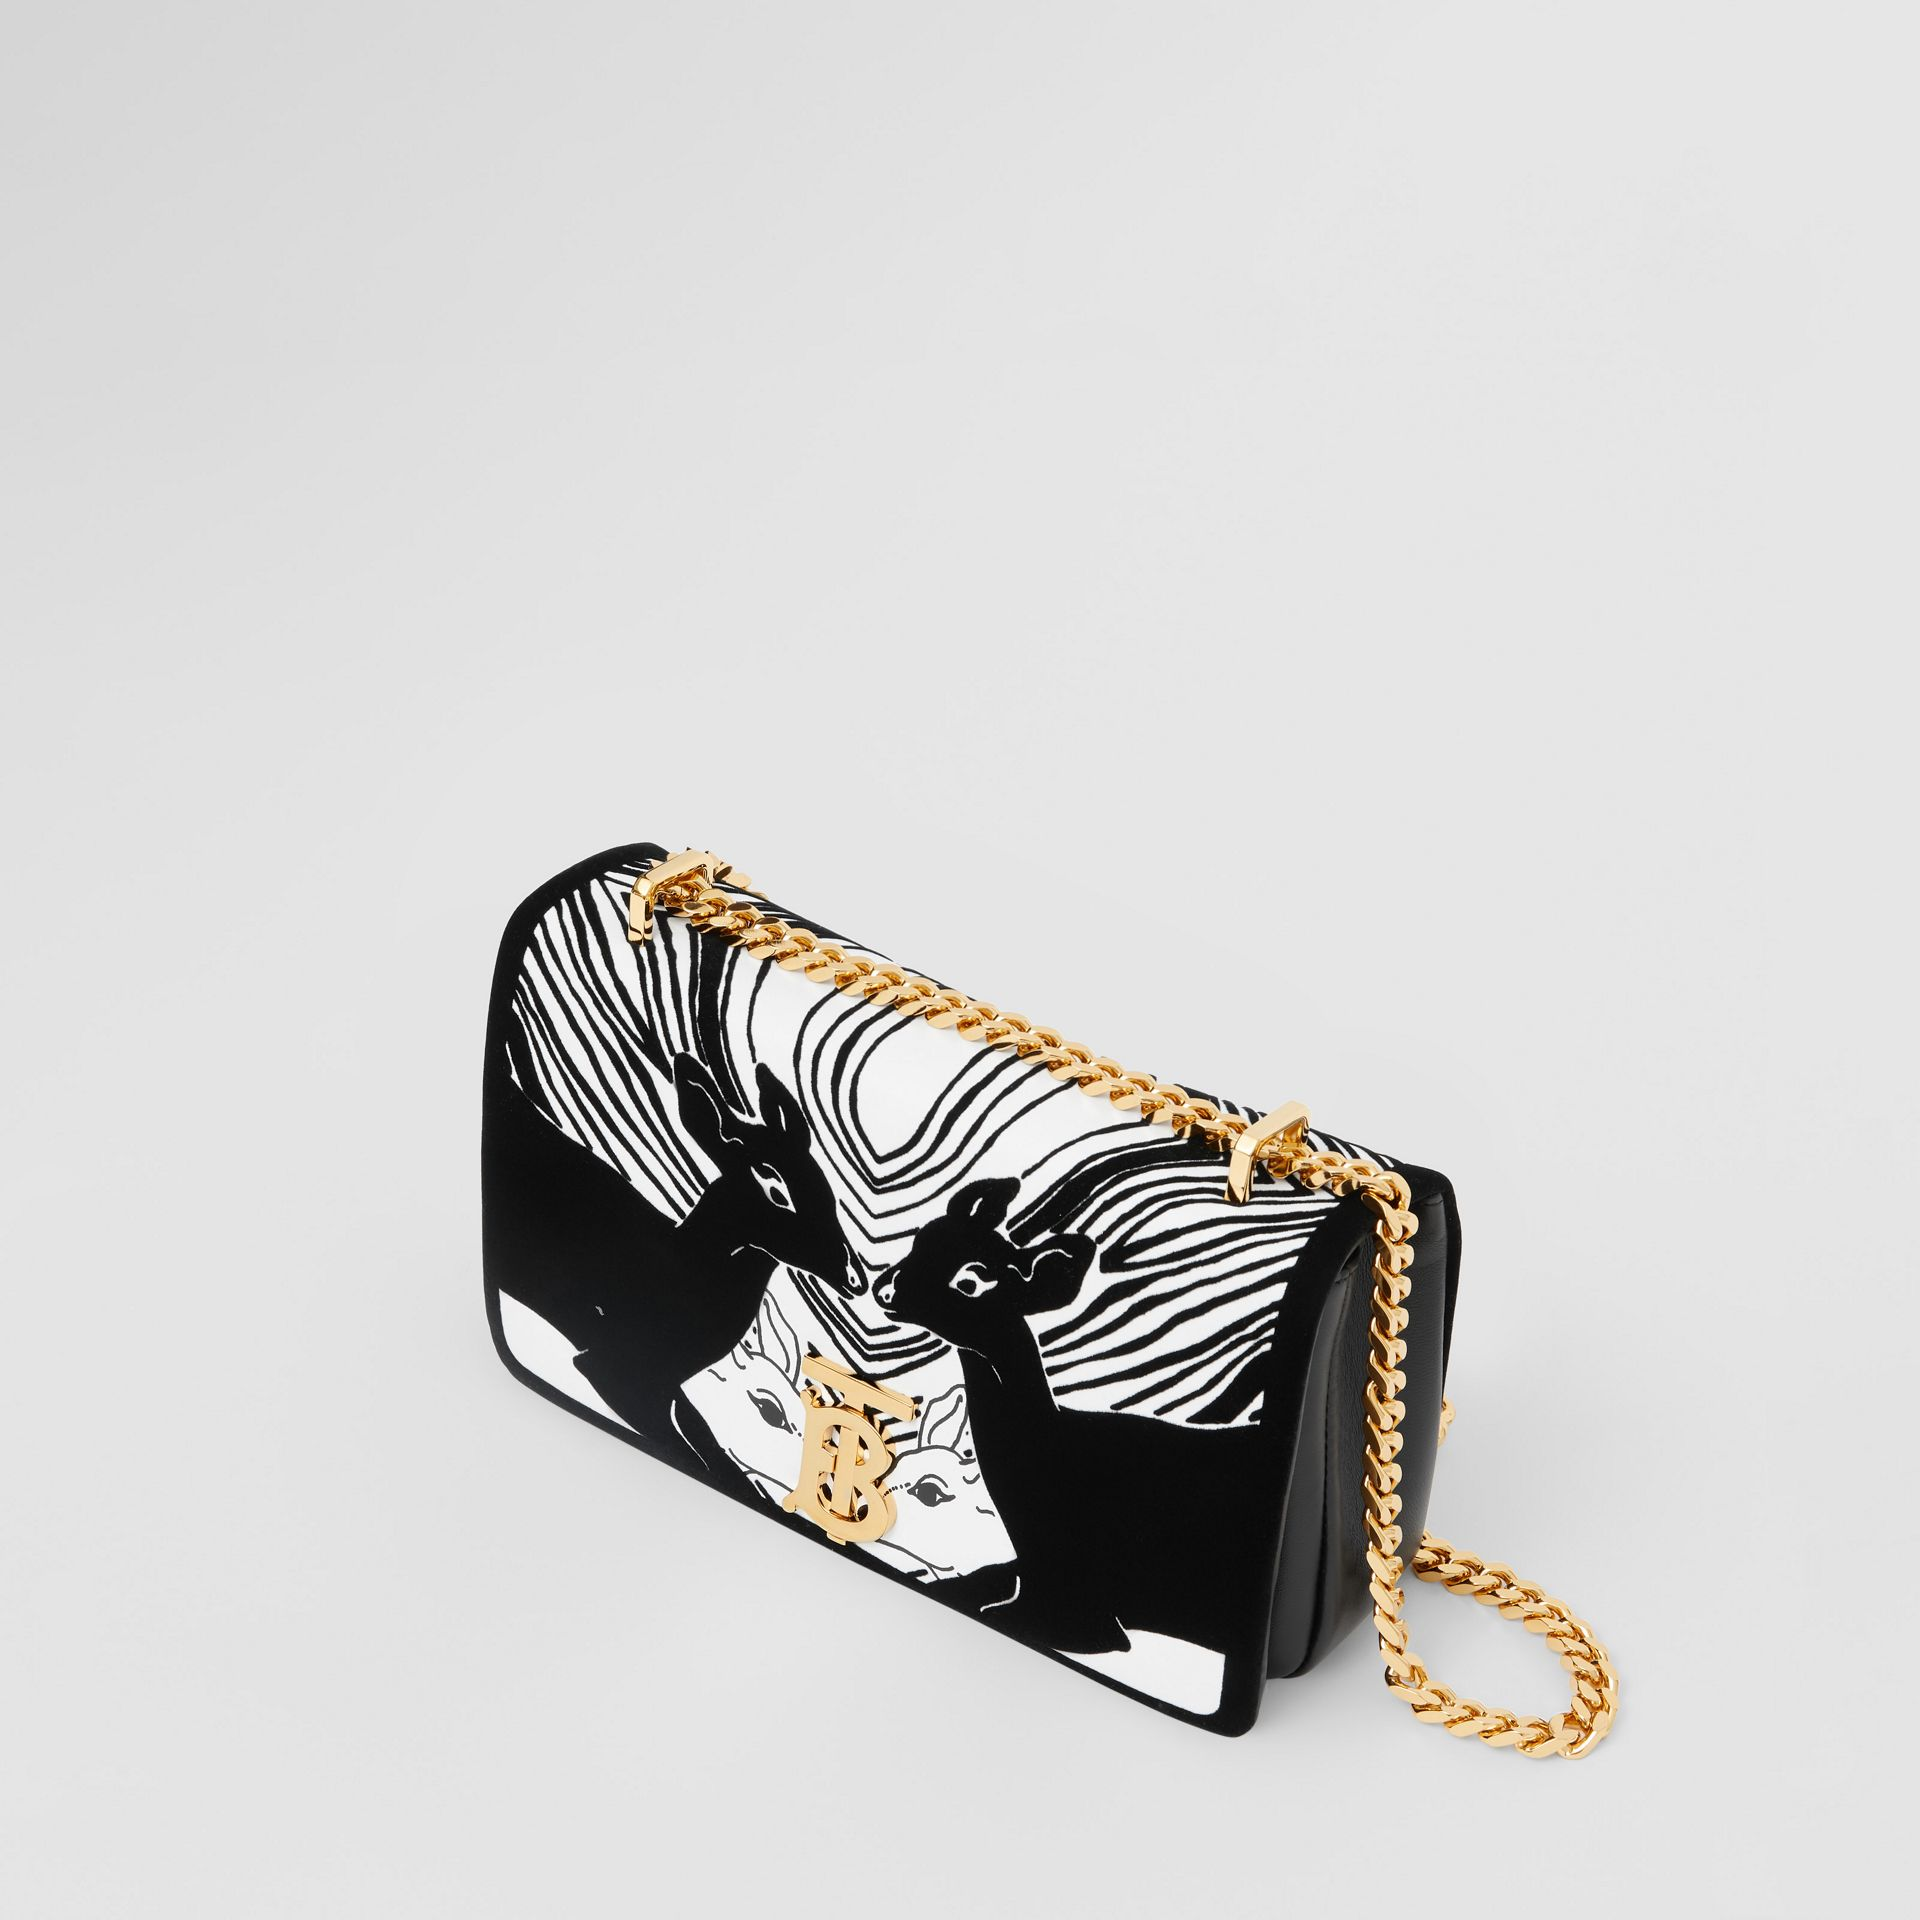 Small Deer Flock Leather Lola Bag in Black/white - Women | Burberry - gallery image 3